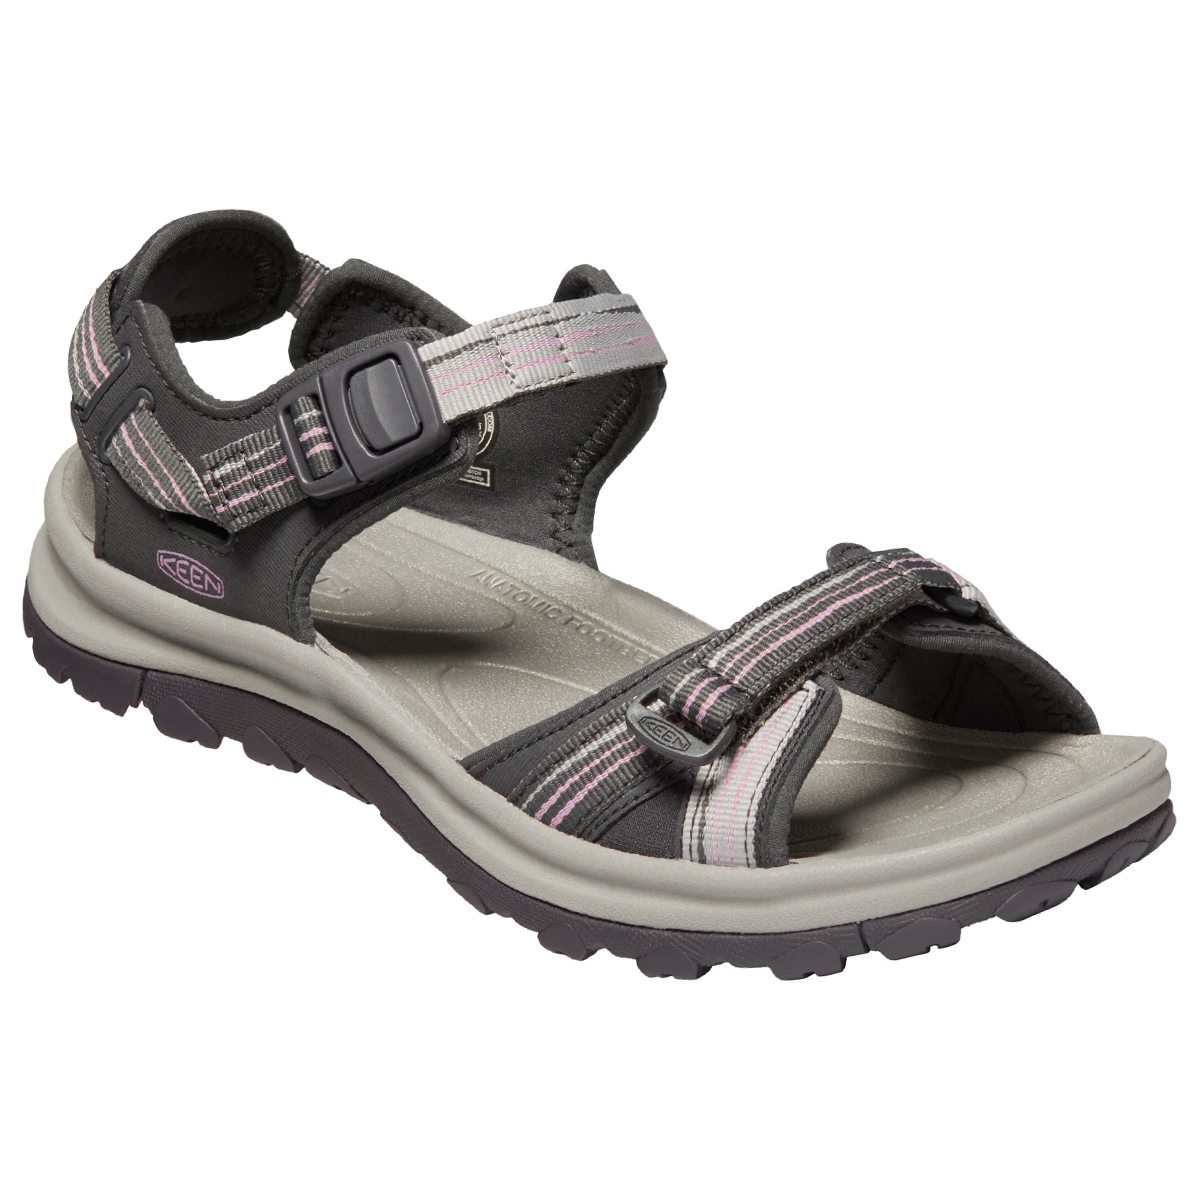 Keen Women's Terradora Hiking Sandals - Black, 9